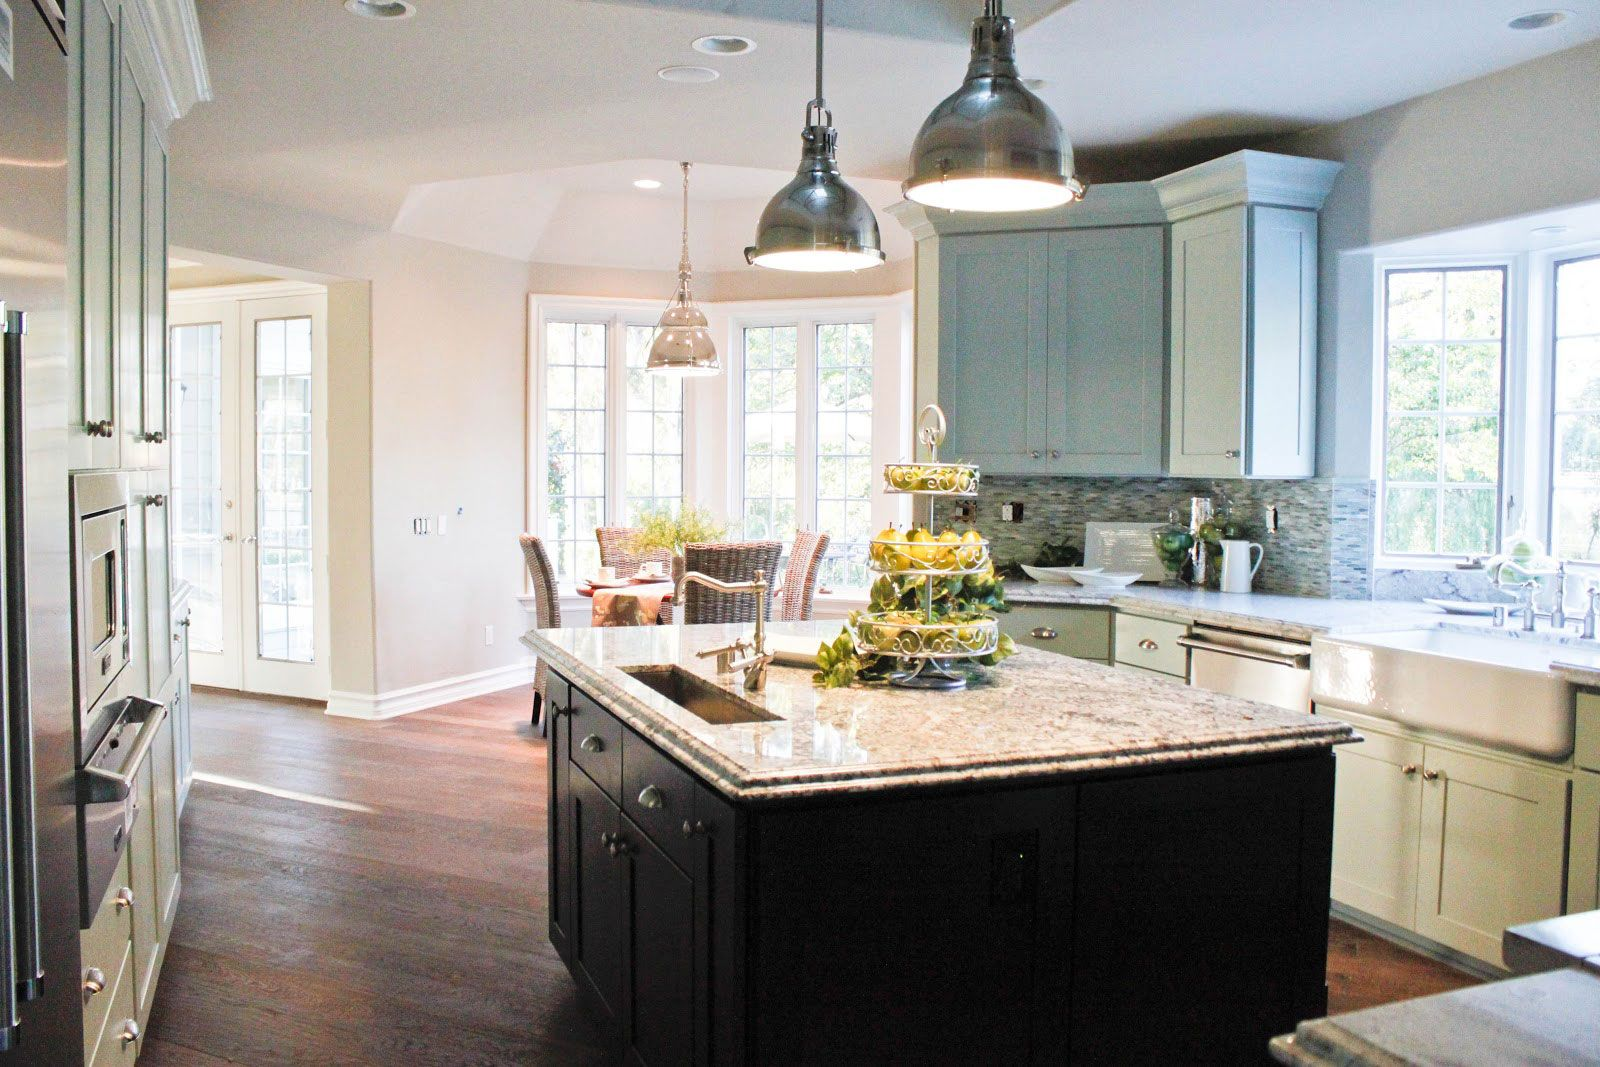 Incredible Traditional Tropical Kitchen Design Interior Decorated With Traditional  Kitchen Pendant Lighting And Marble Countertop